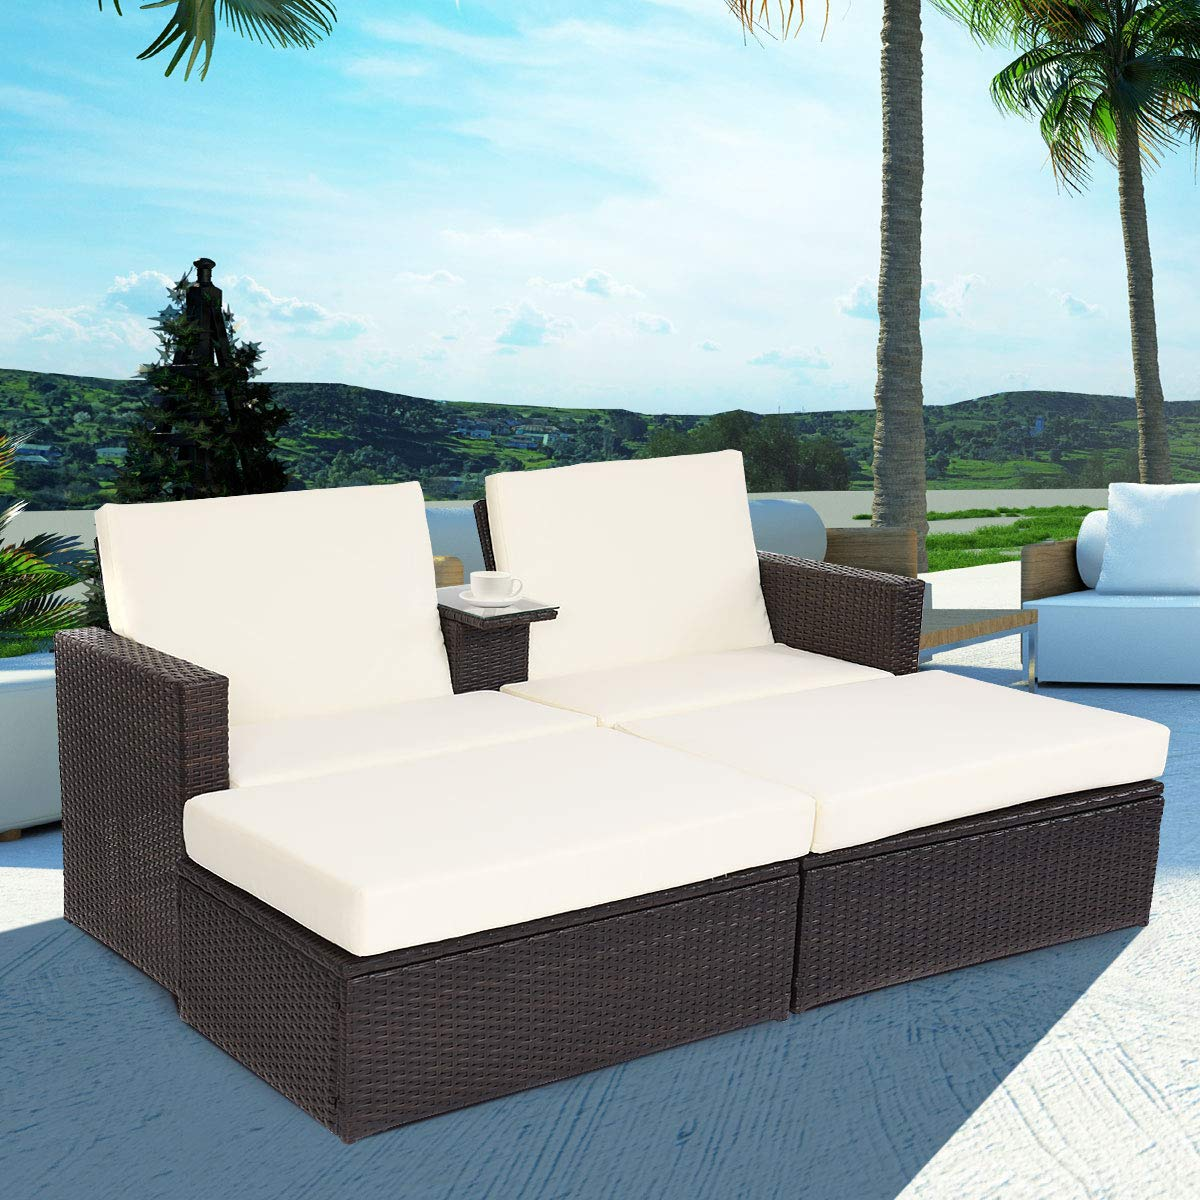 Tangkula 3 Pcs Wicker Chaise Lounge Outdoor Pool Adjustable Lounge Chair Set with Table and Cushions (Brown)